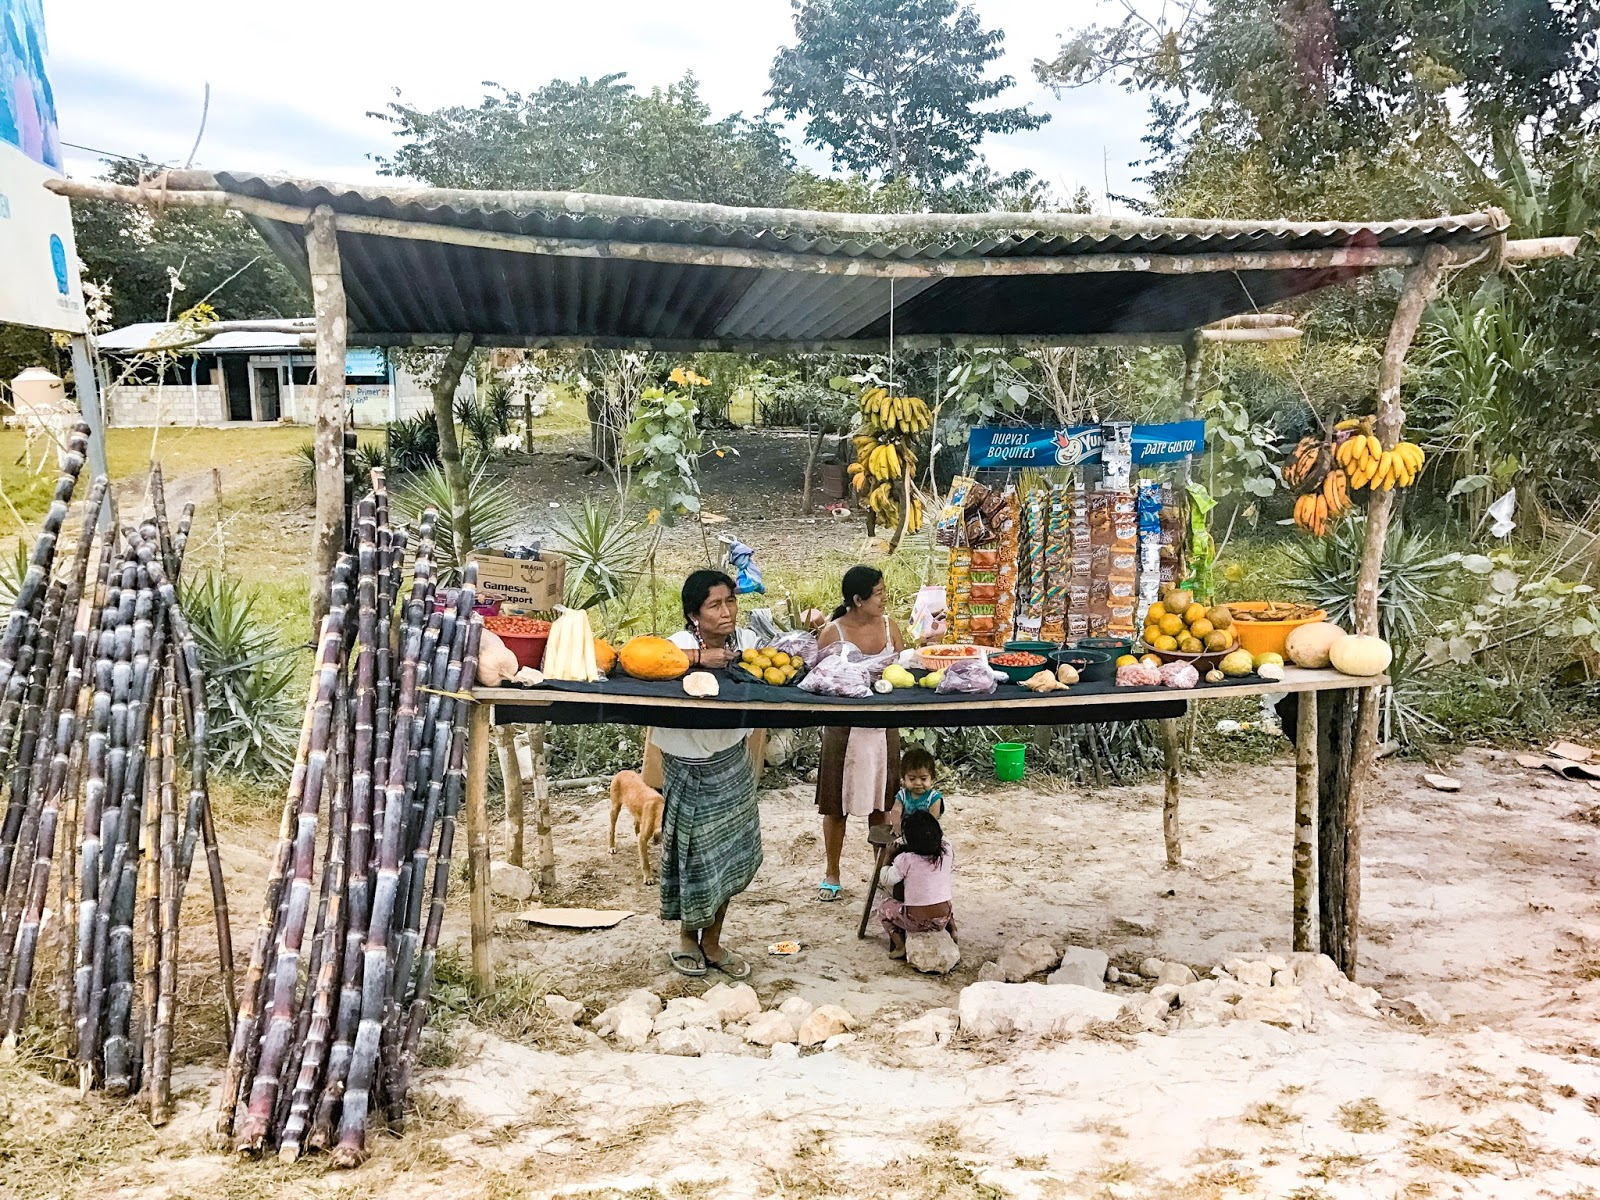 road side stall in guatemala